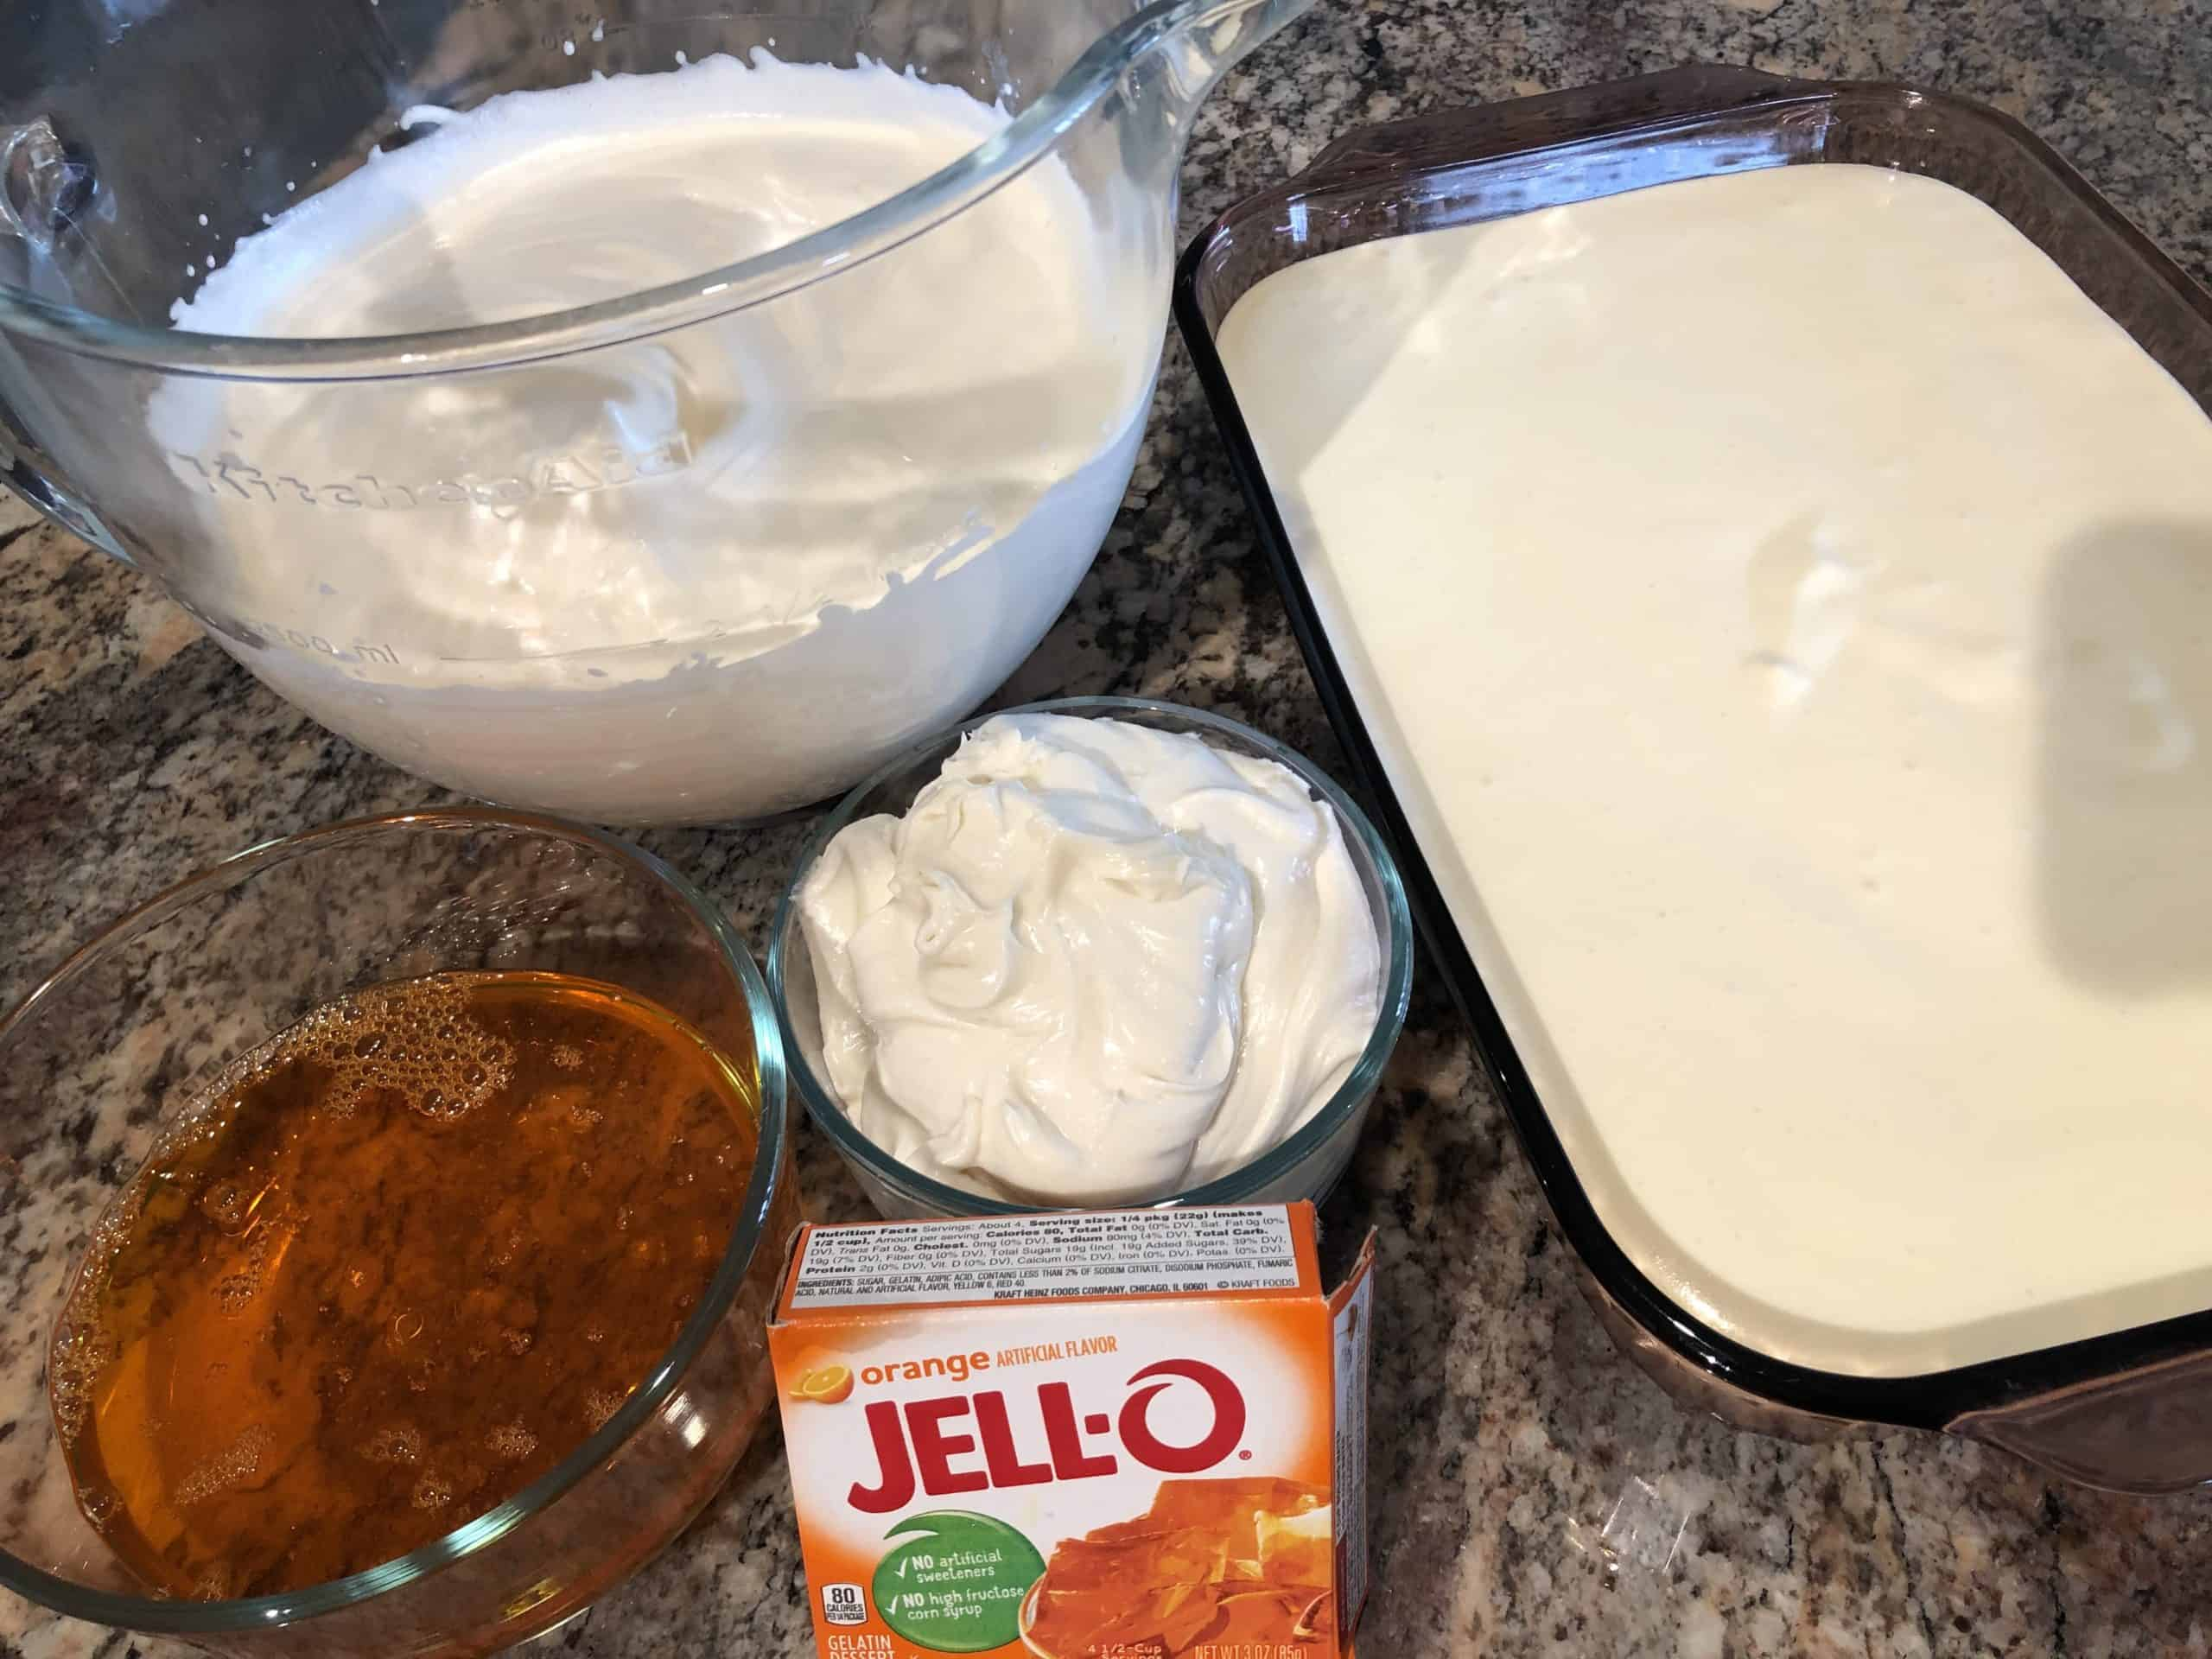 Whipped Evaporated Milk, Cream Cheese Mixture, Jello Mixture & Finished Citrus No-Bake Cheesecake Pan